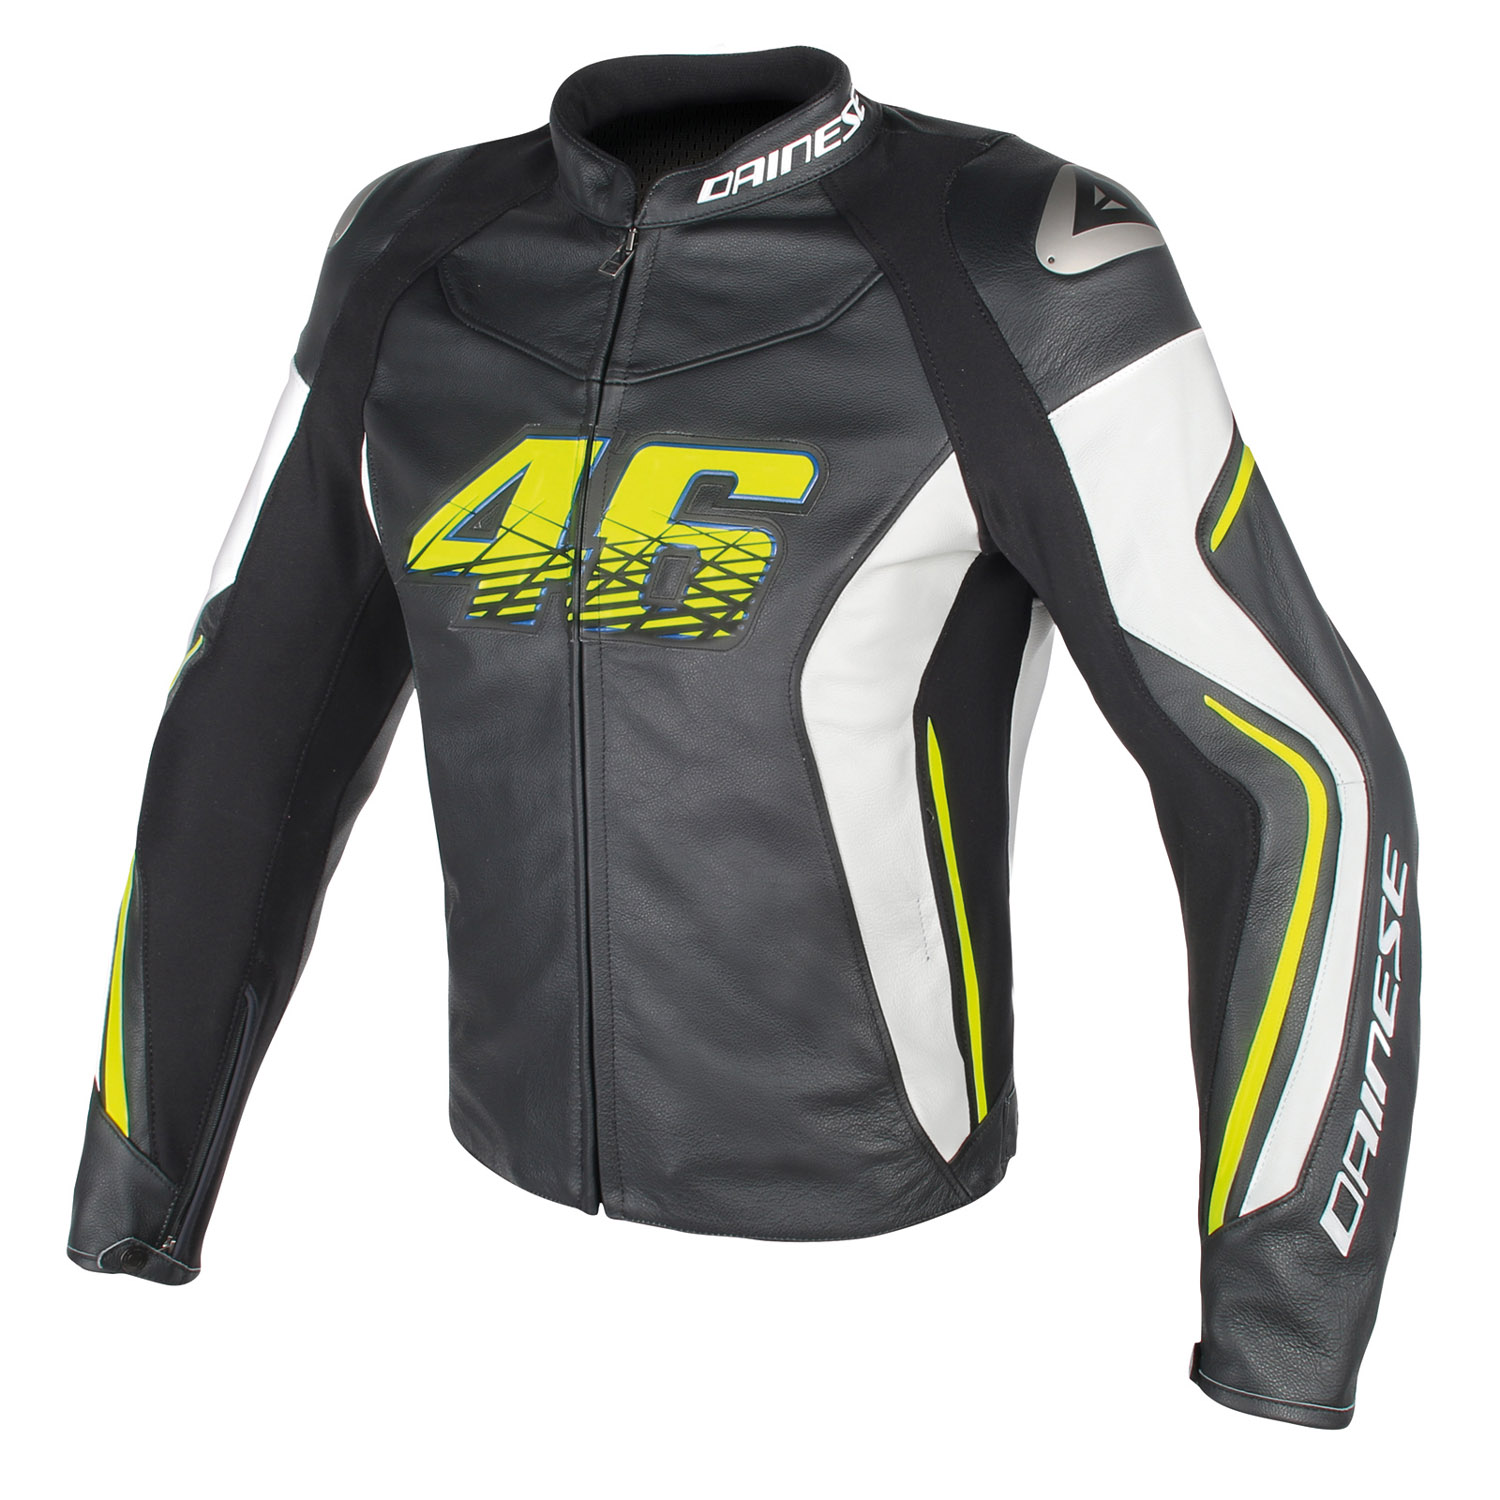 dainese vr46 d2 motorrad lederjacke schwarz weiss neongelb. Black Bedroom Furniture Sets. Home Design Ideas